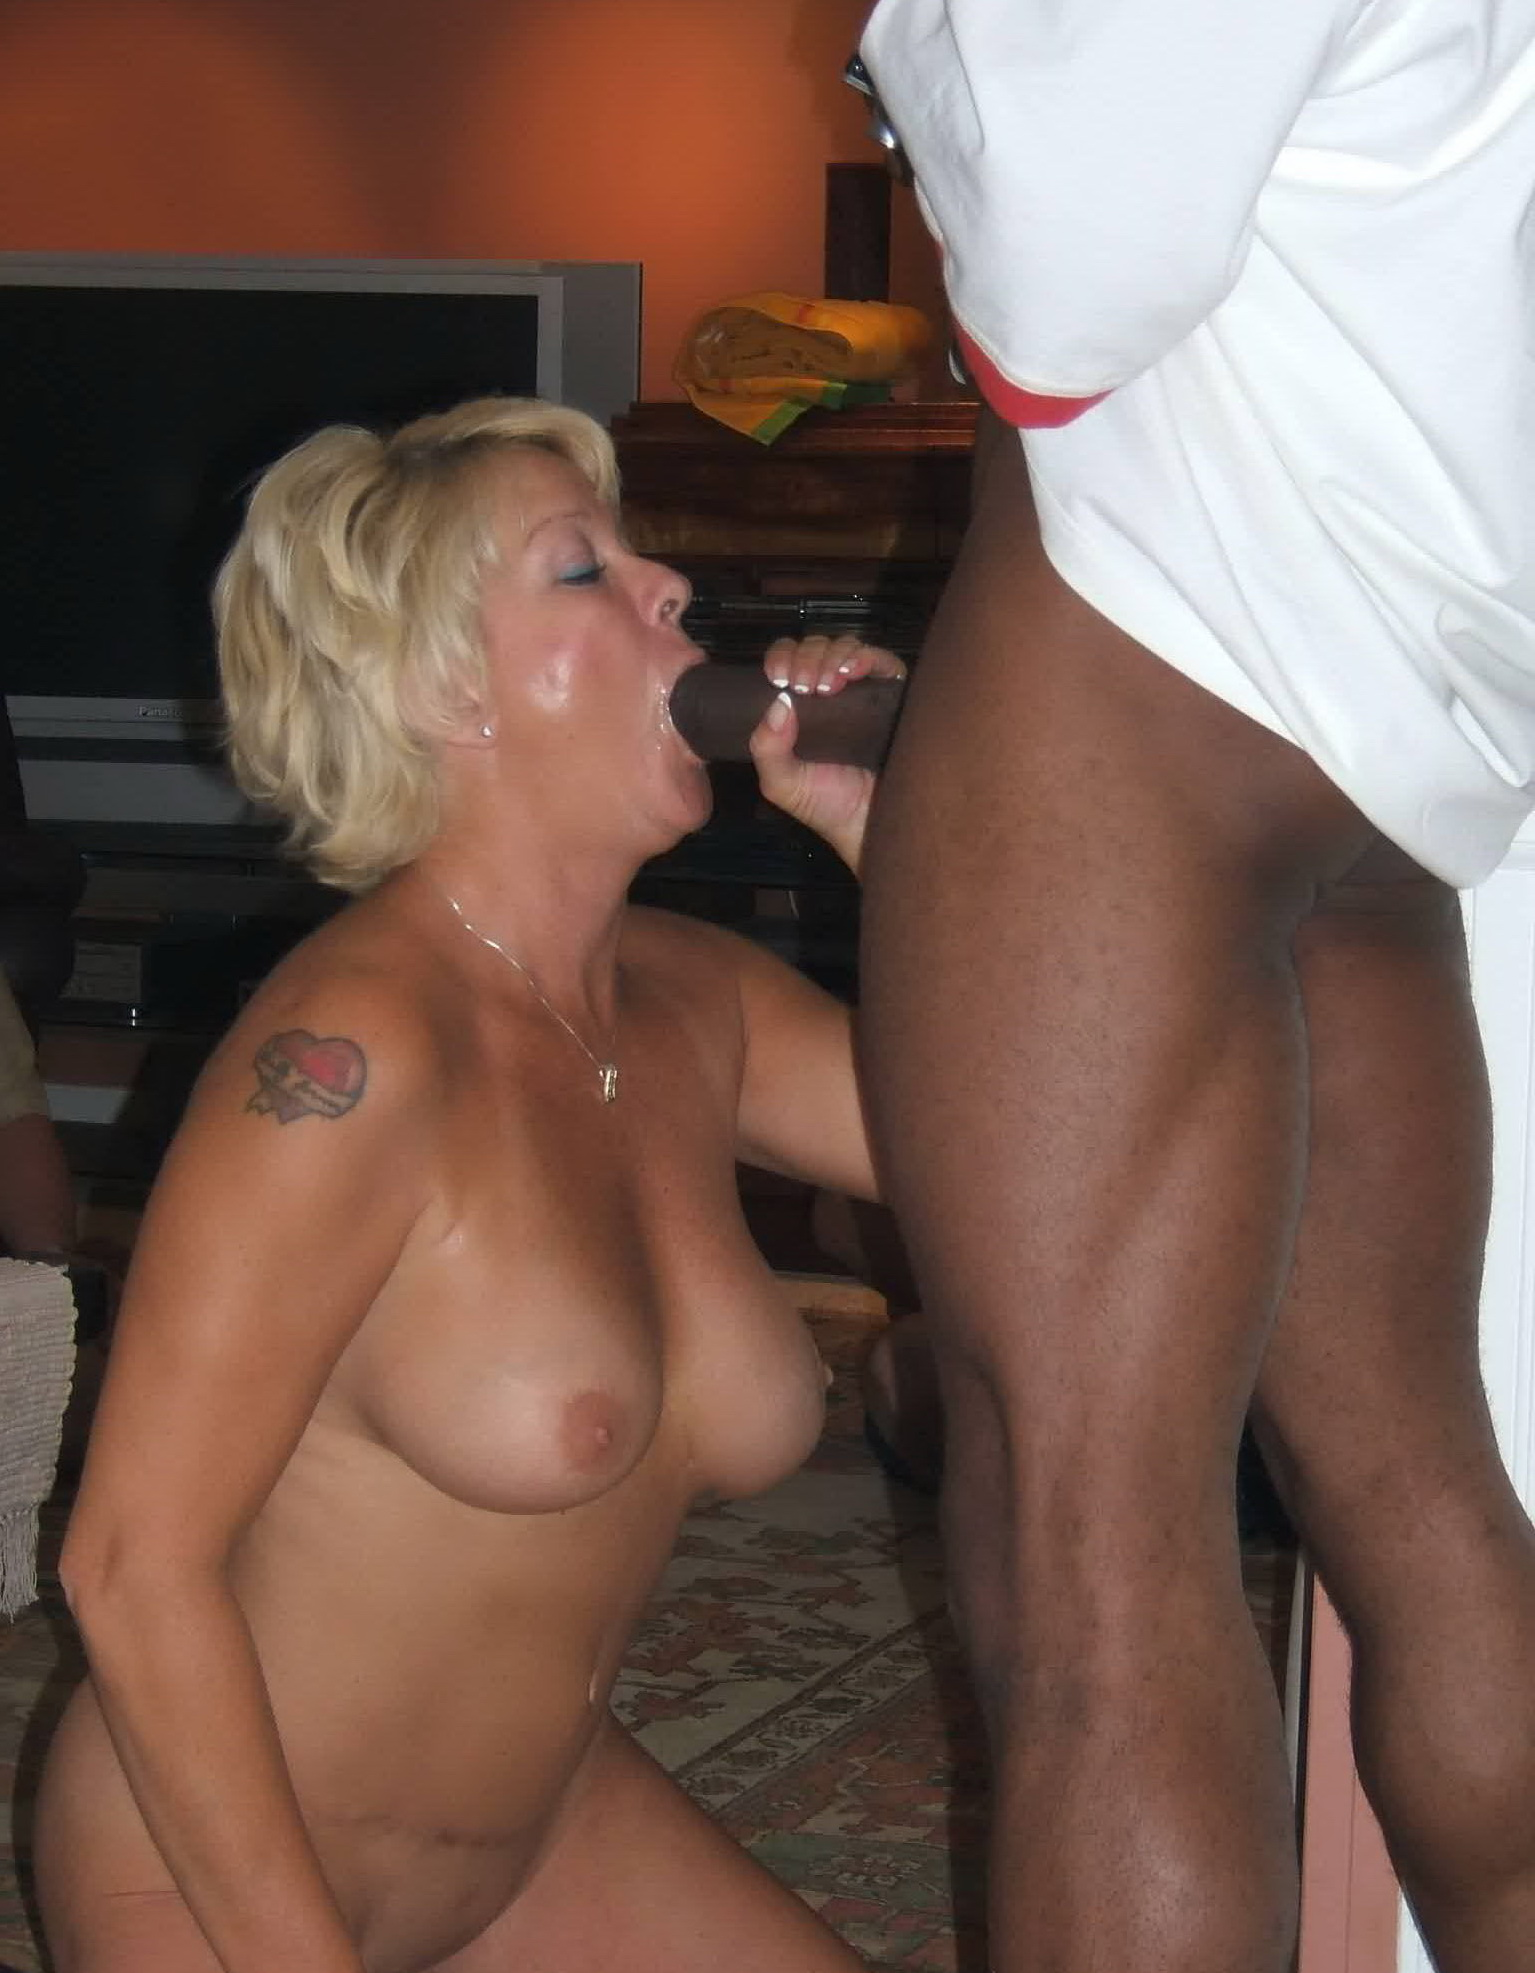 Interracial mature blog